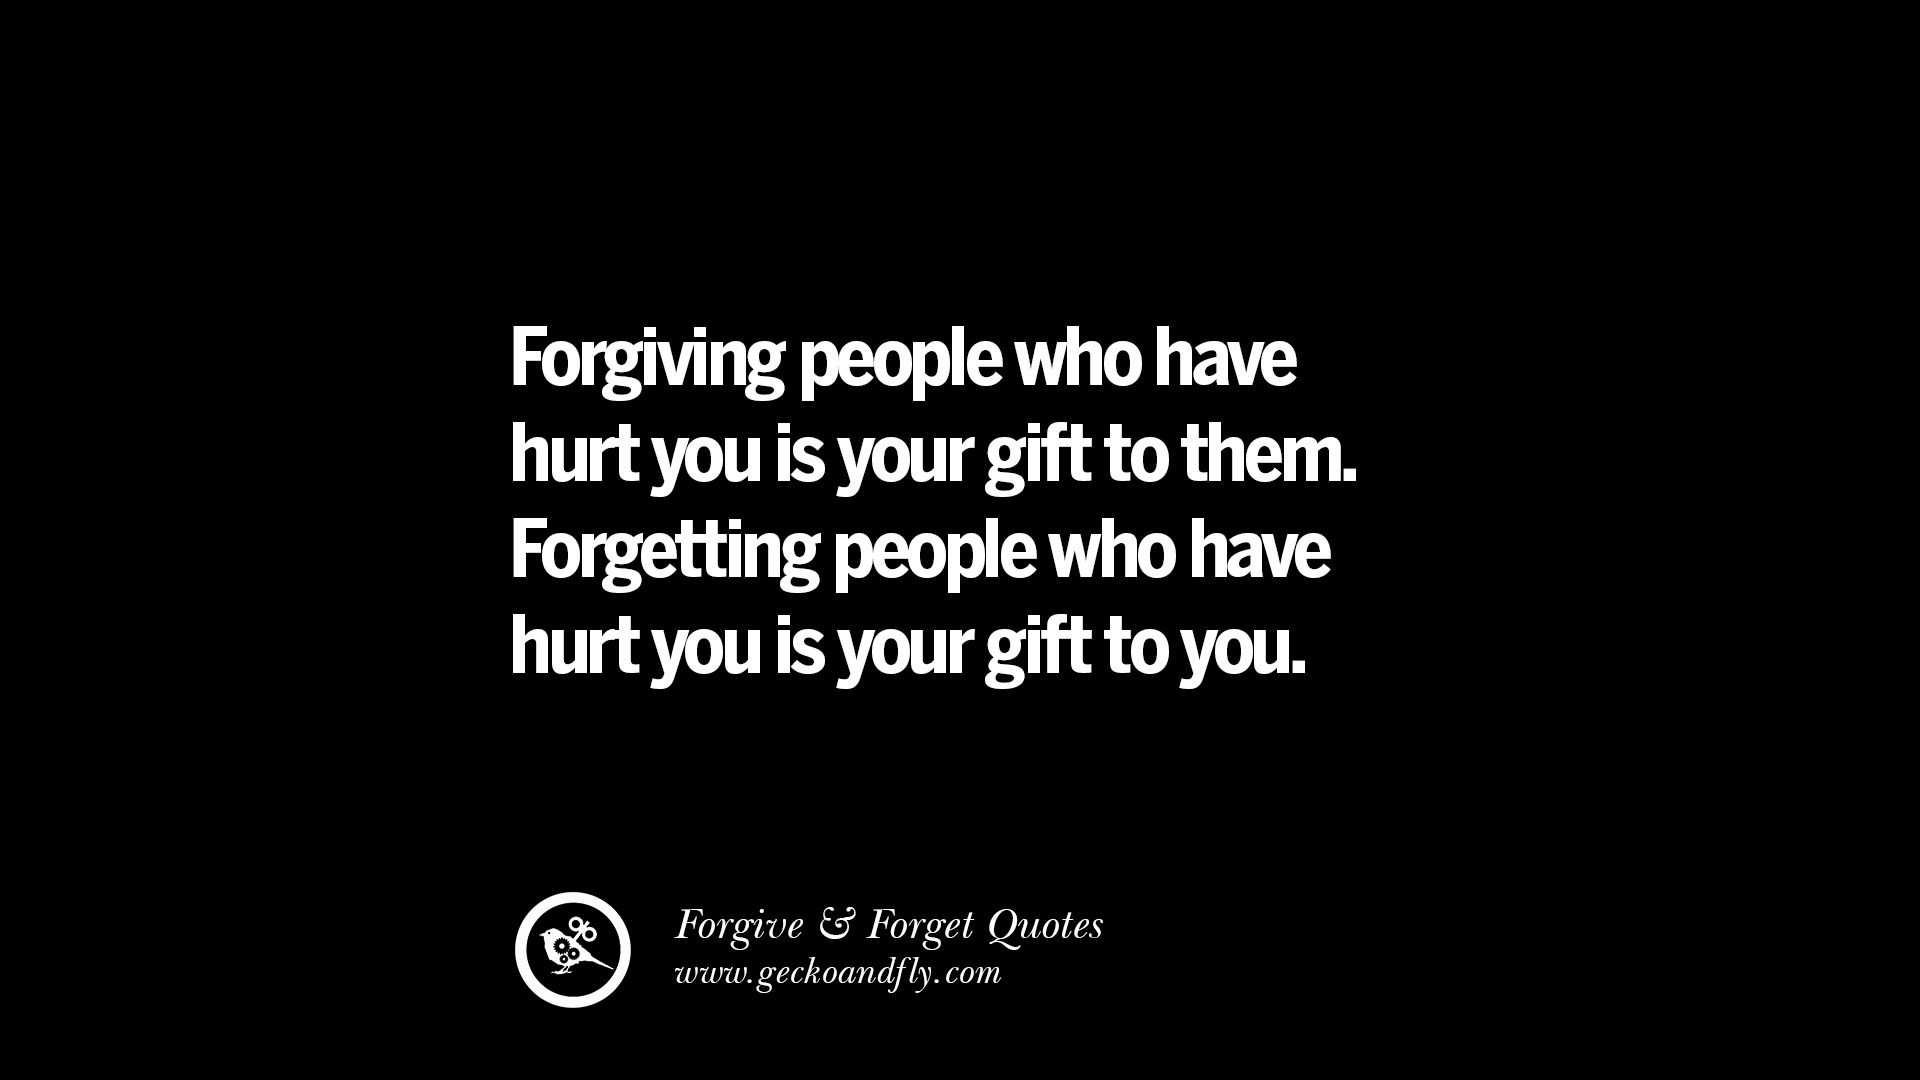 50 Quotes On Forgive And Forget When Someone Hurts You In